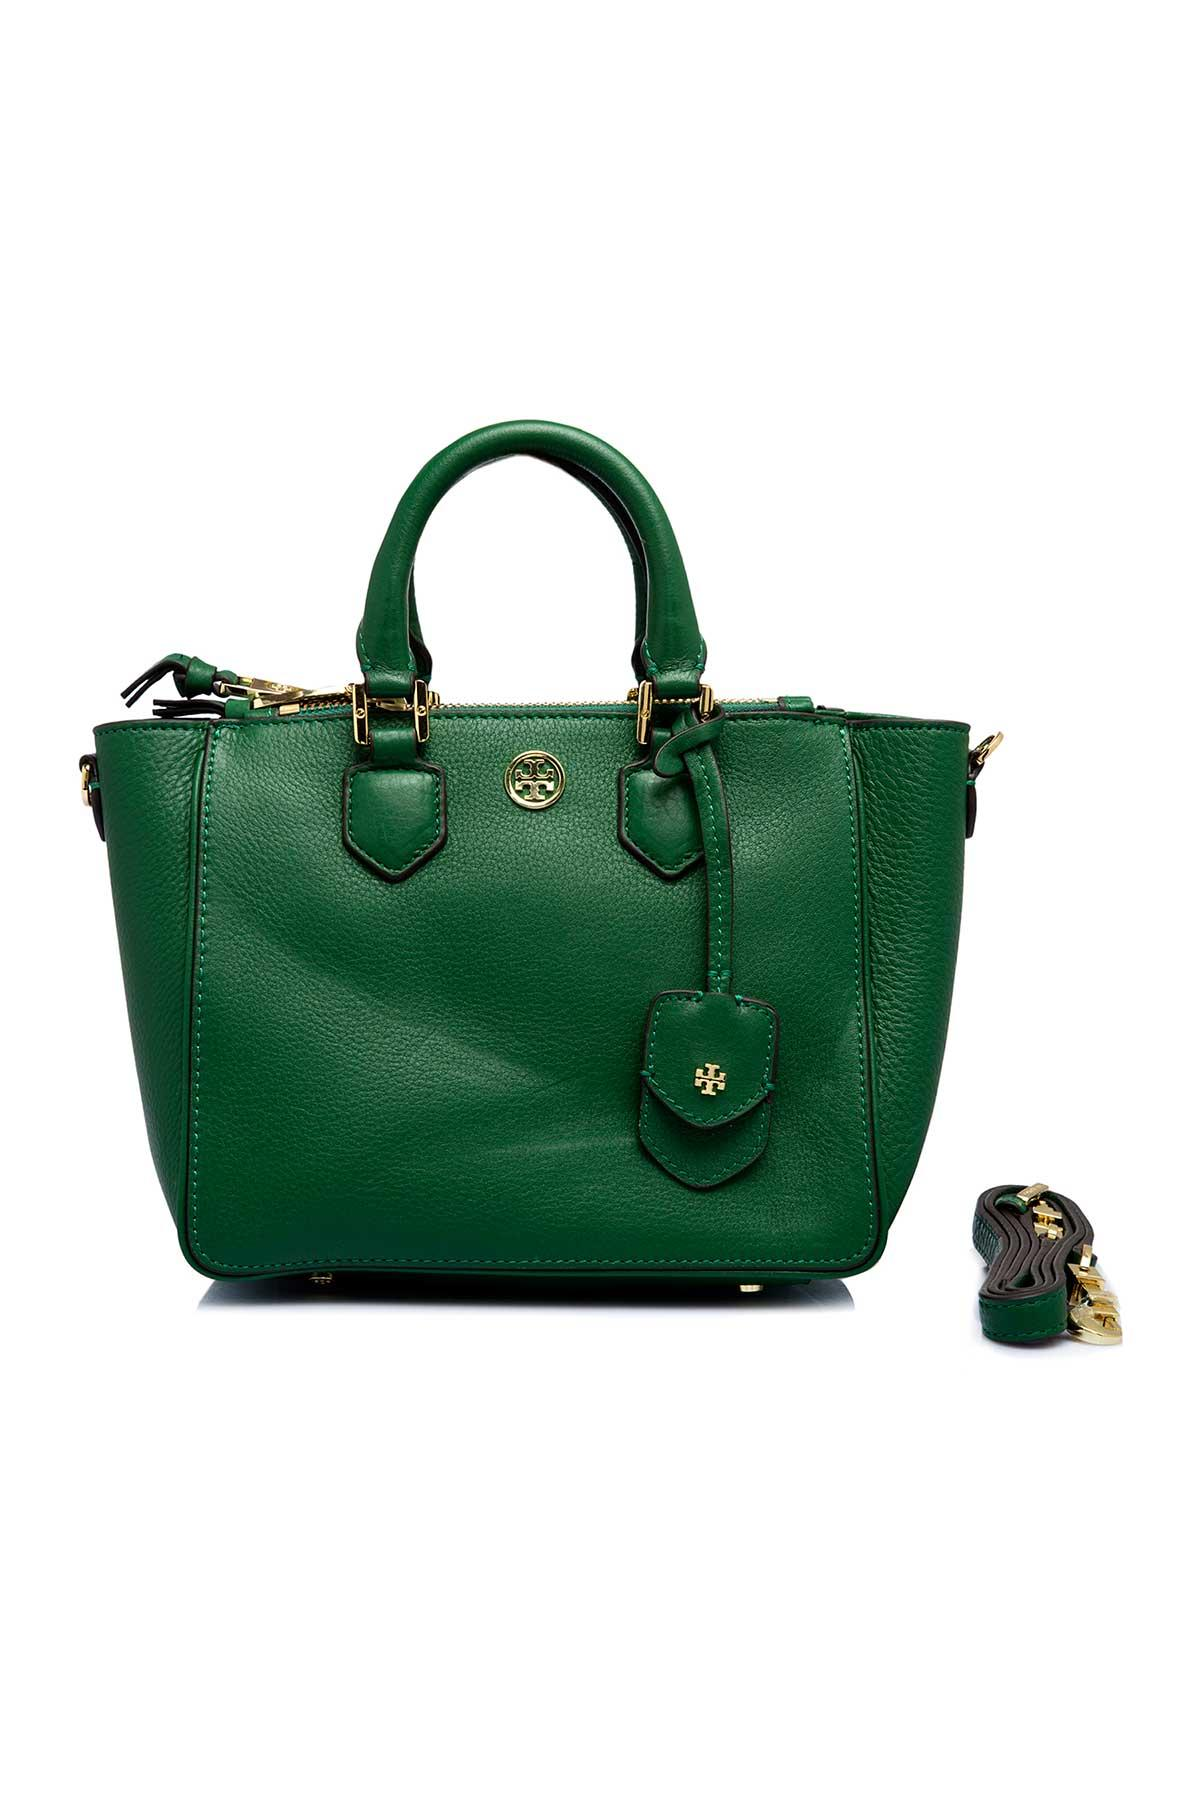 3d55ae659c15 Green Mini Square Tote by Tory Burch for rent online